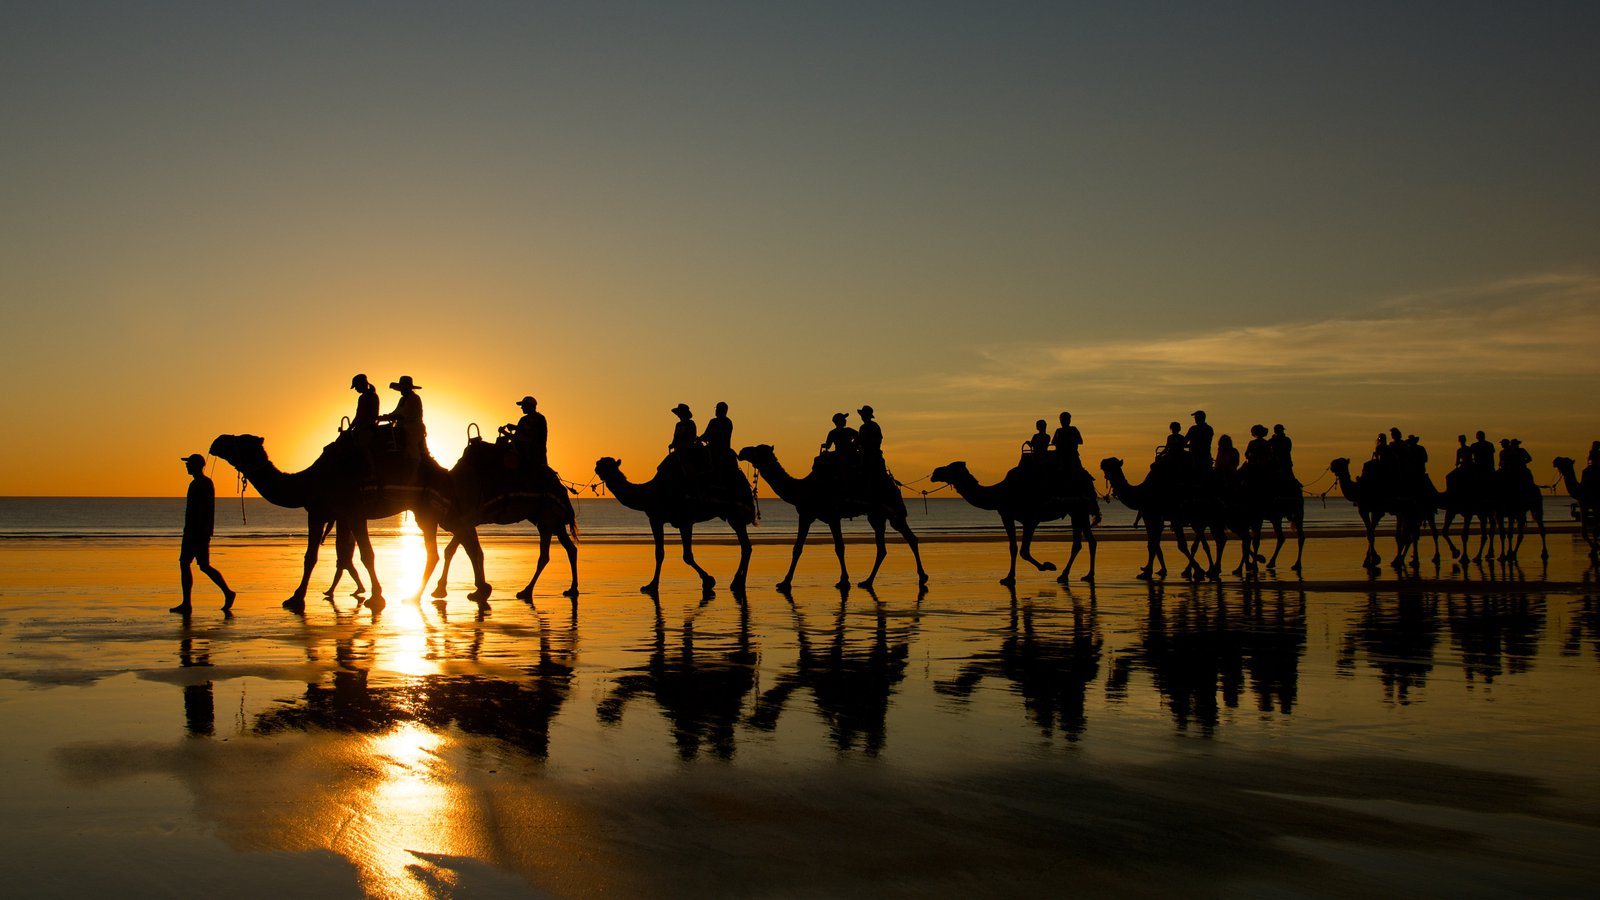 Cable Beach which includes a sandy beach, land animals and landscape views